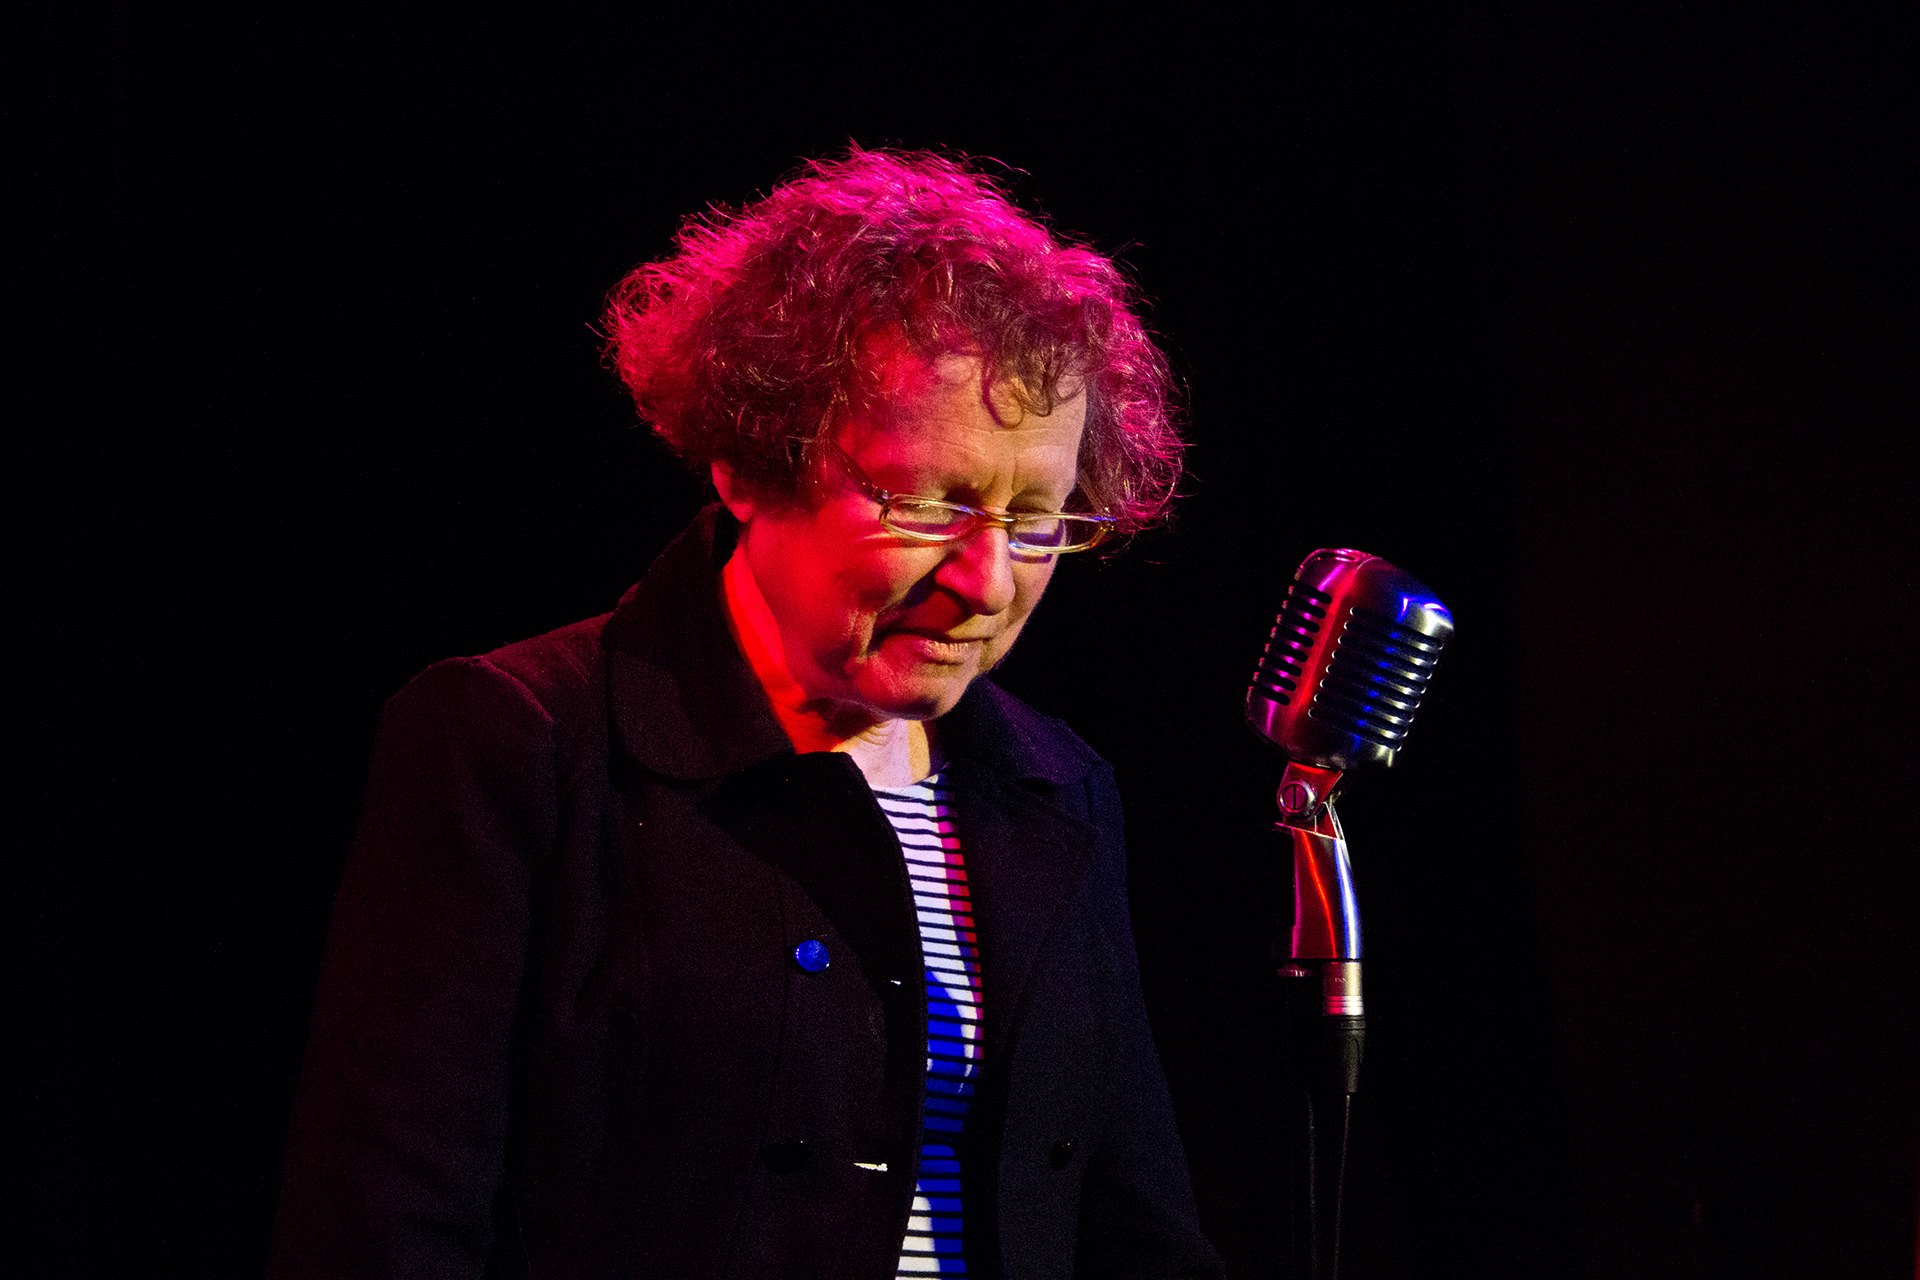 Picture of Ania Walwicz, an older person with olive skin and light hair, resting on stage in front of a microphone. She is about to speak.